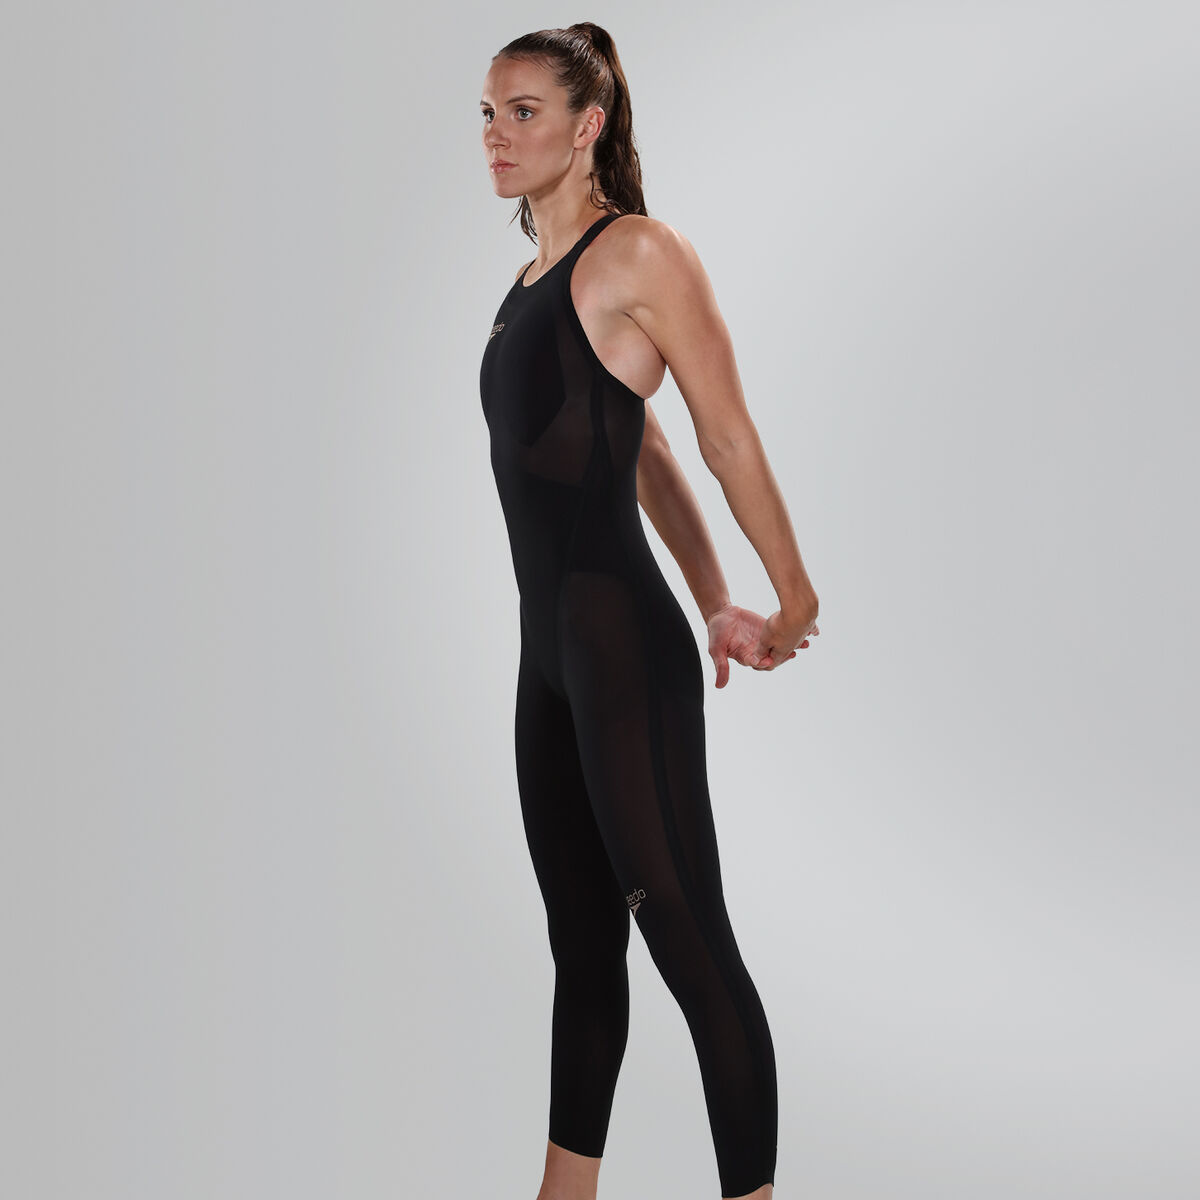 Fastskin LZR Elite Openwater Closedback Female Bodyskin